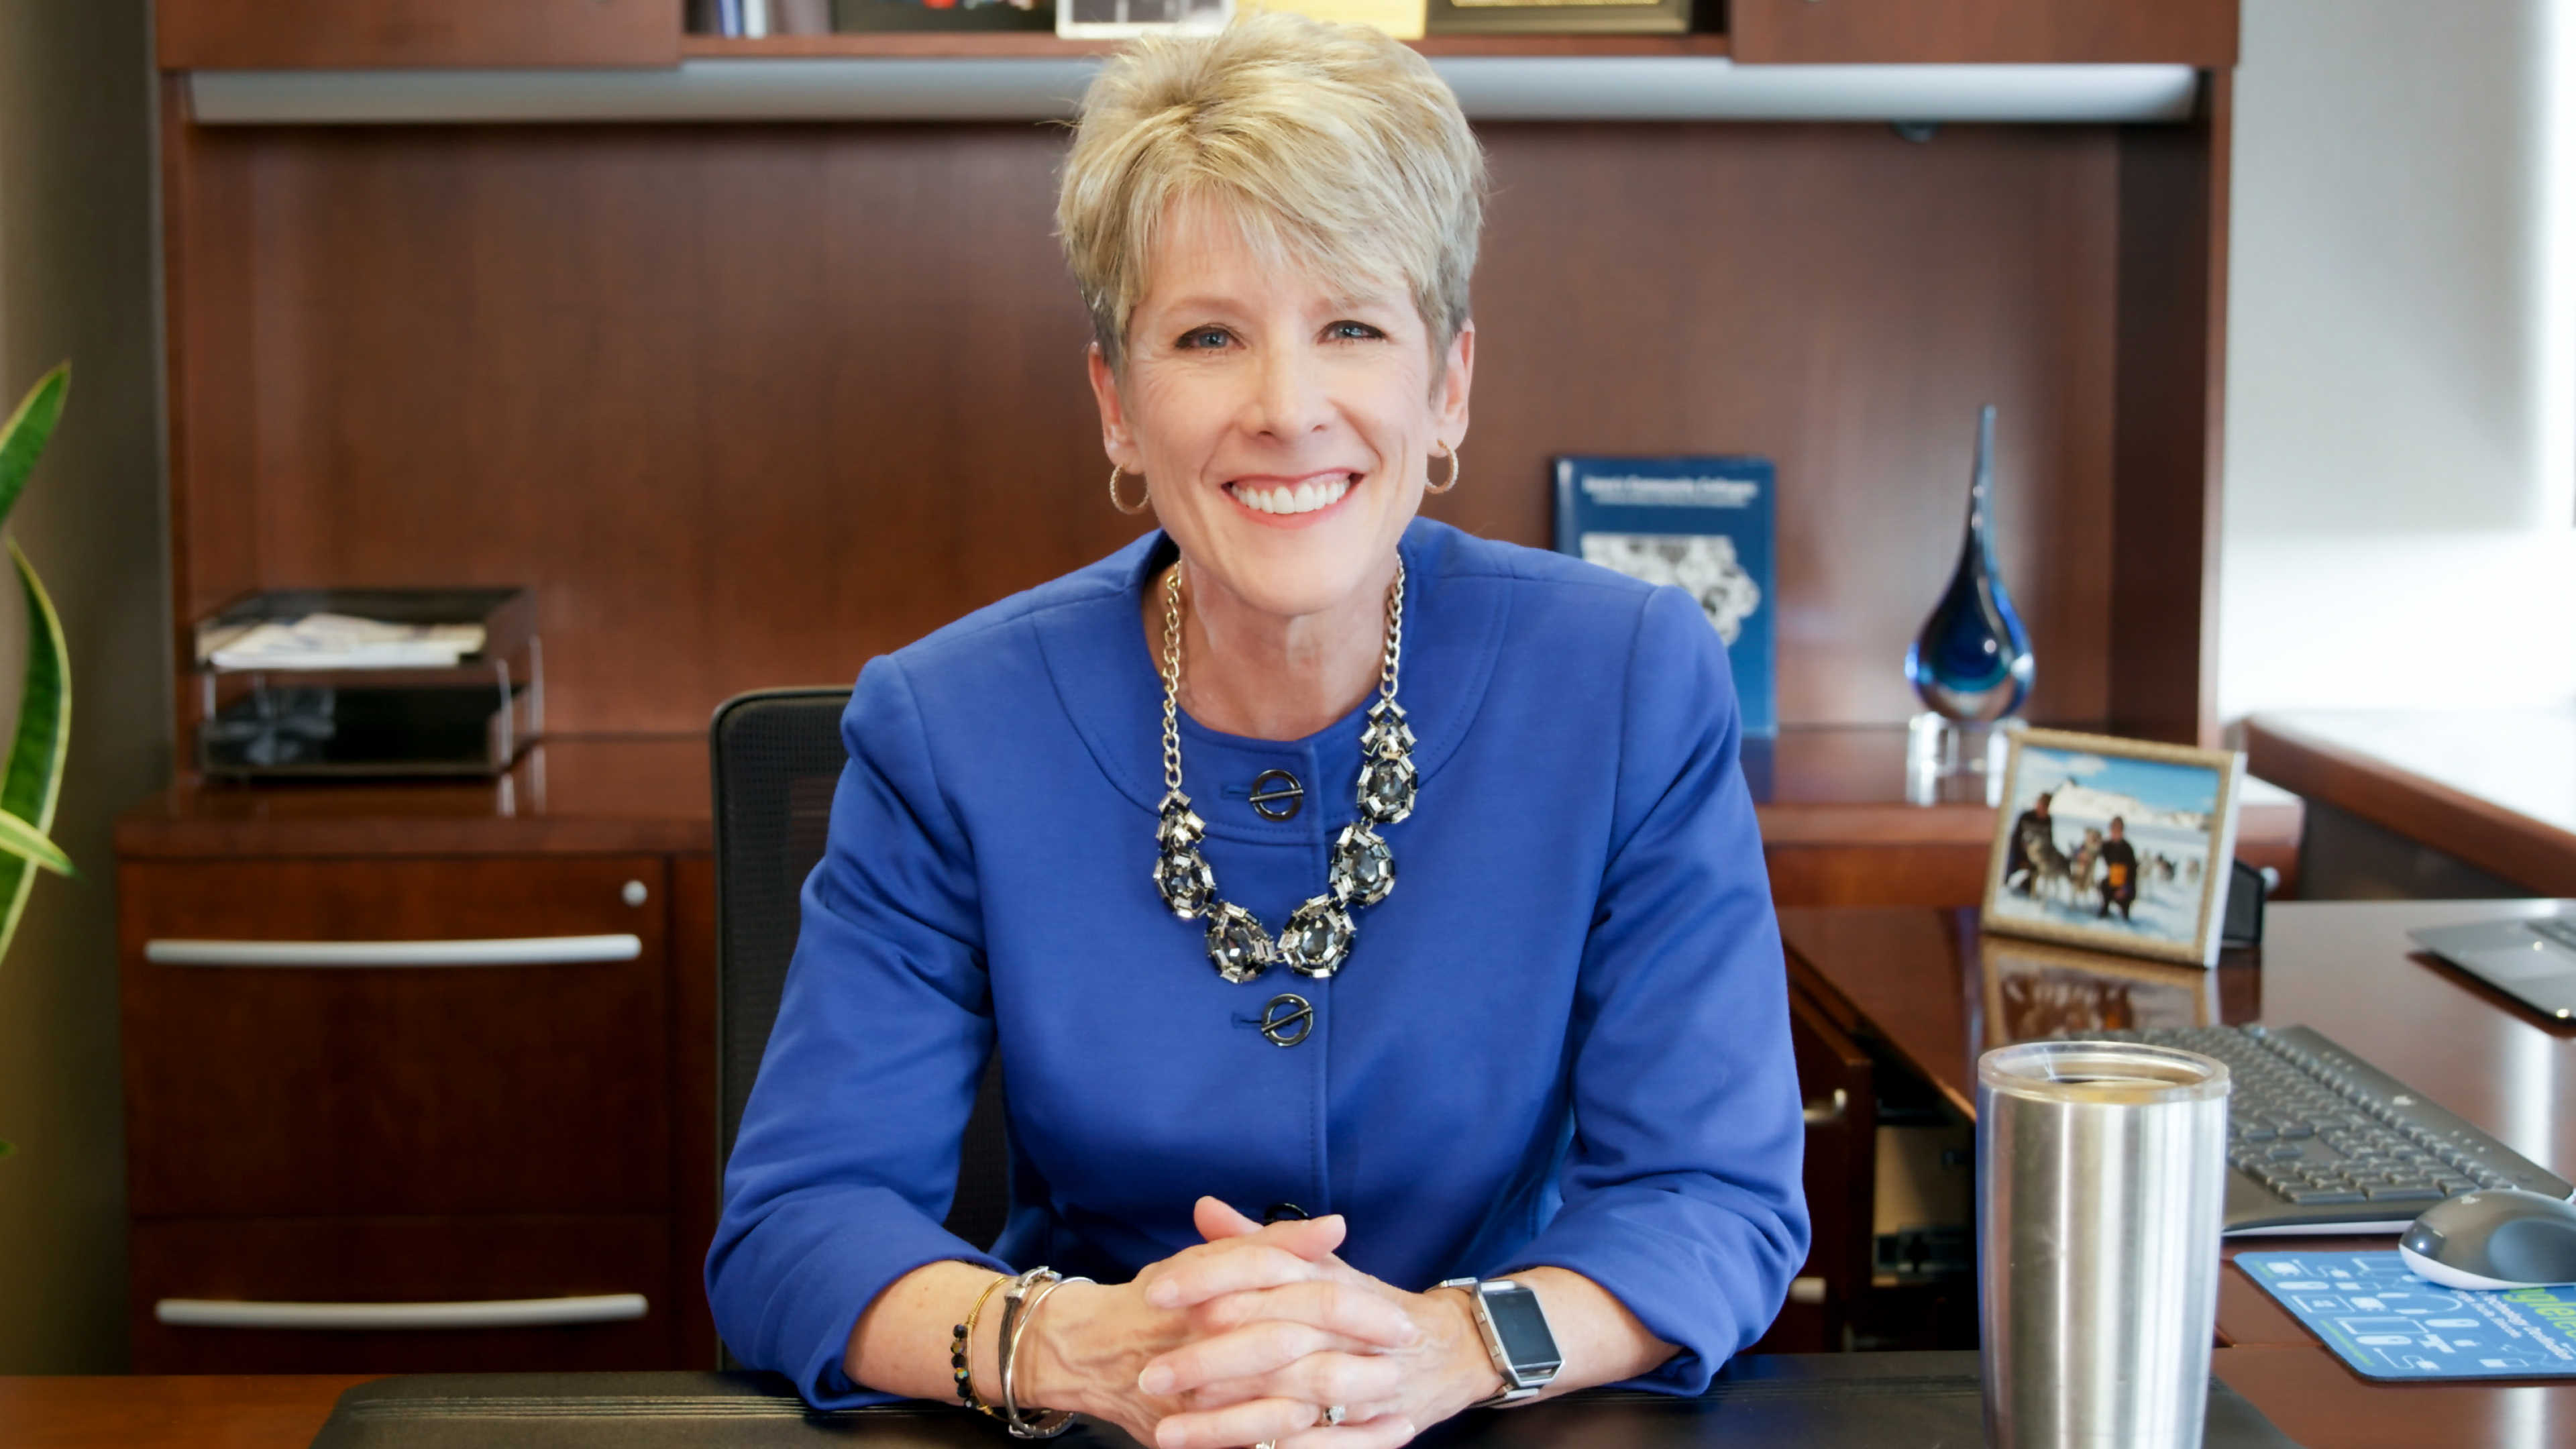 INAUGURATION OF PRESIDENT LORI SUNDBERG - TUESDAY, NOV. 6   |   4 TO 5:15 P.M.VIEW LIVESTREAM